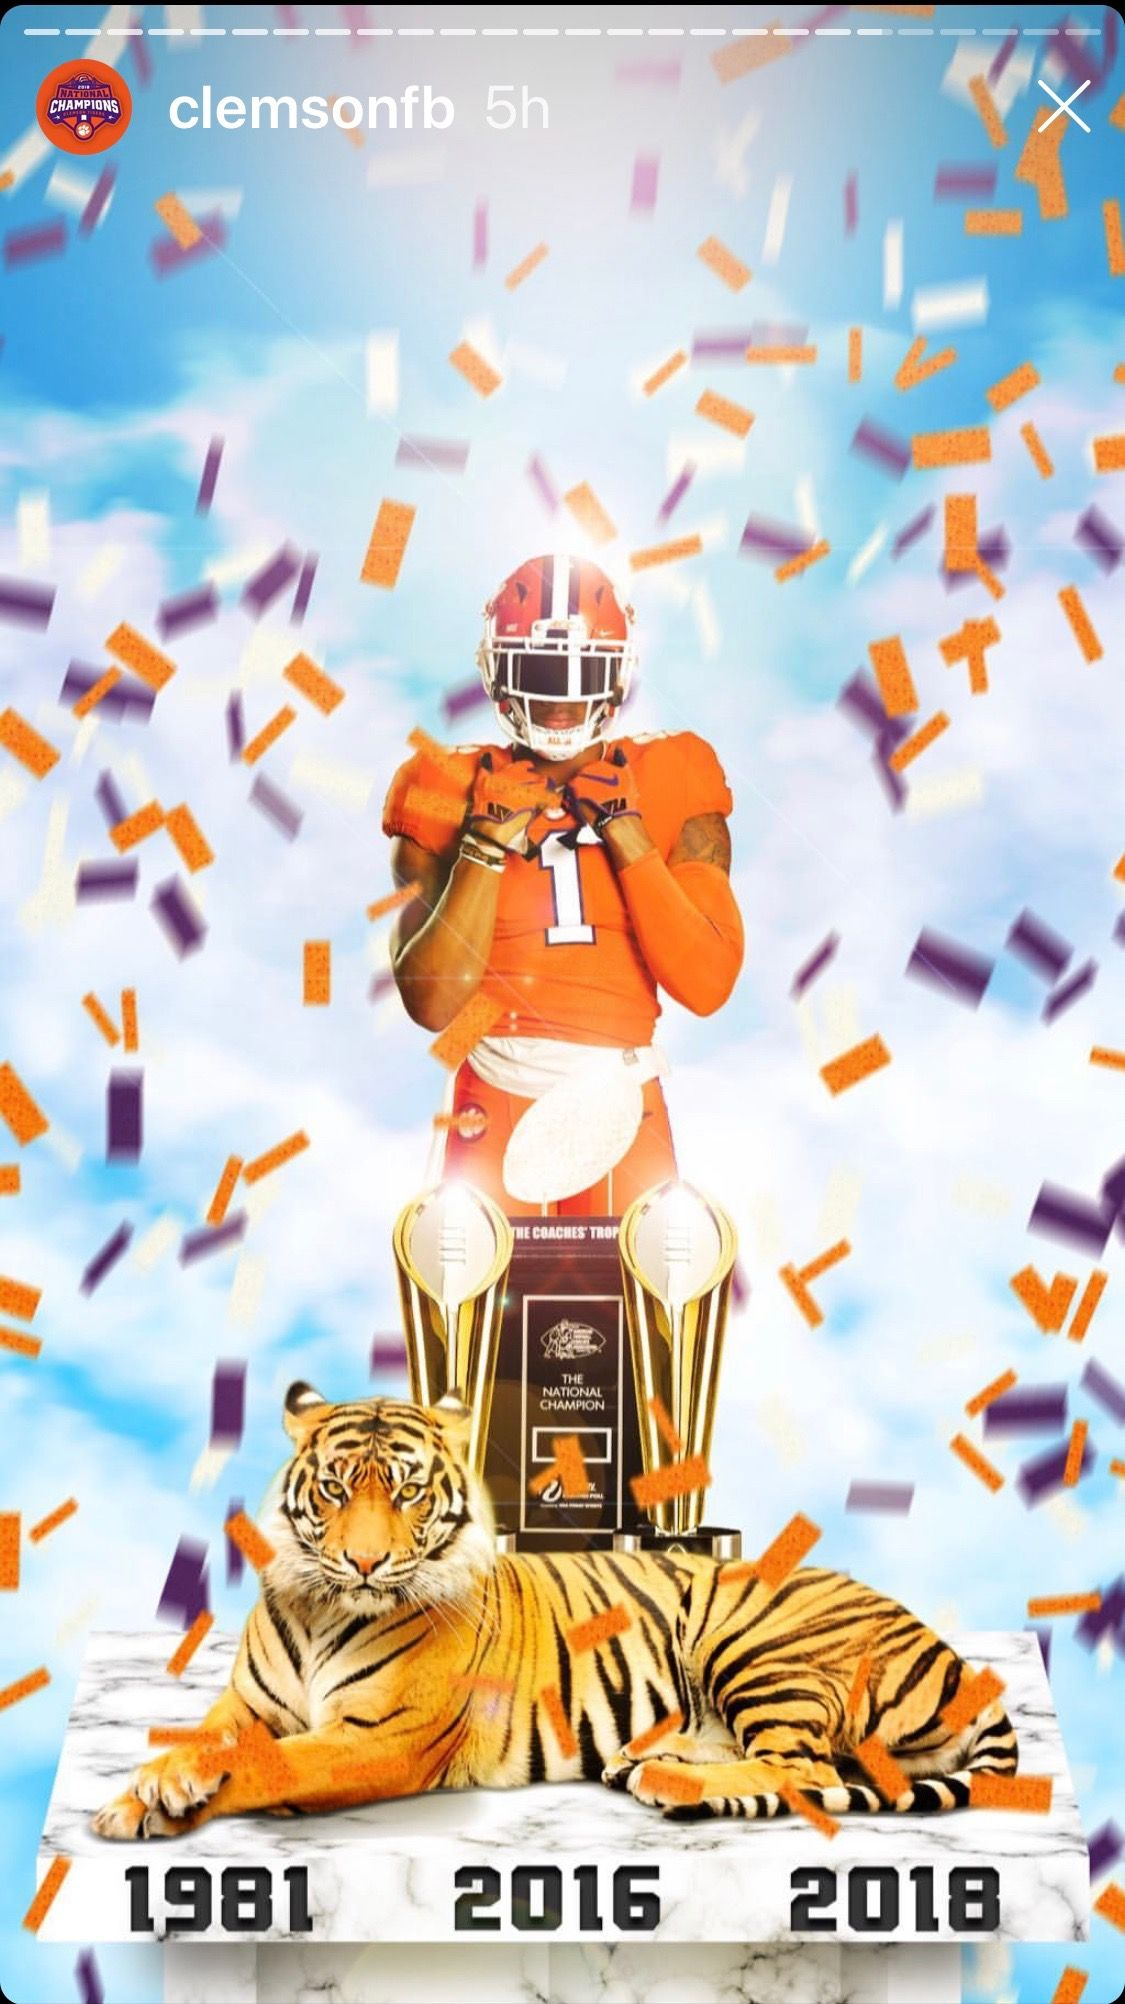 Pin By Cynthia V On Clemson Clemson Tigers Football Clemson Tigers Wallpaper Clemson Paw